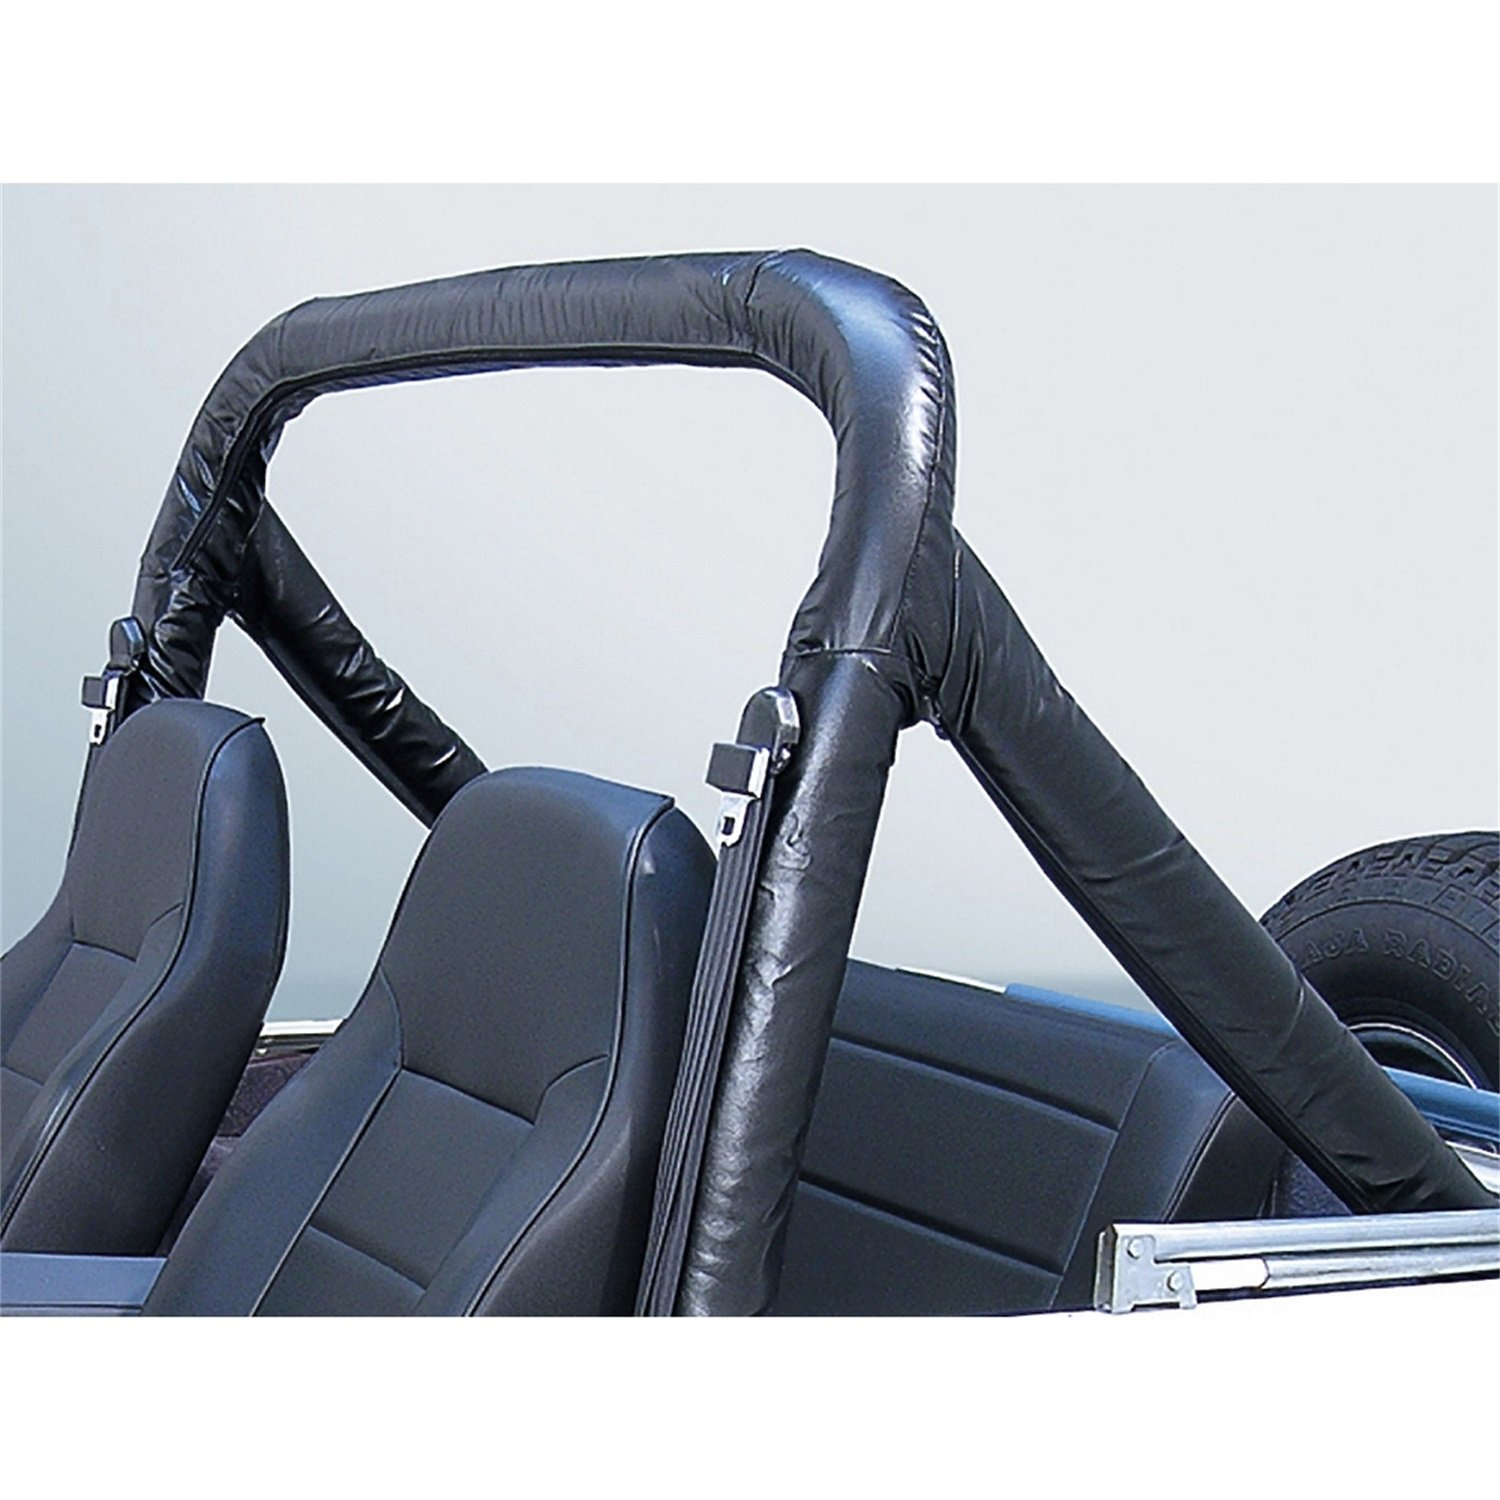 Jeep Wrangler & CJ Roll Bar Cover Kit (1978-1991)